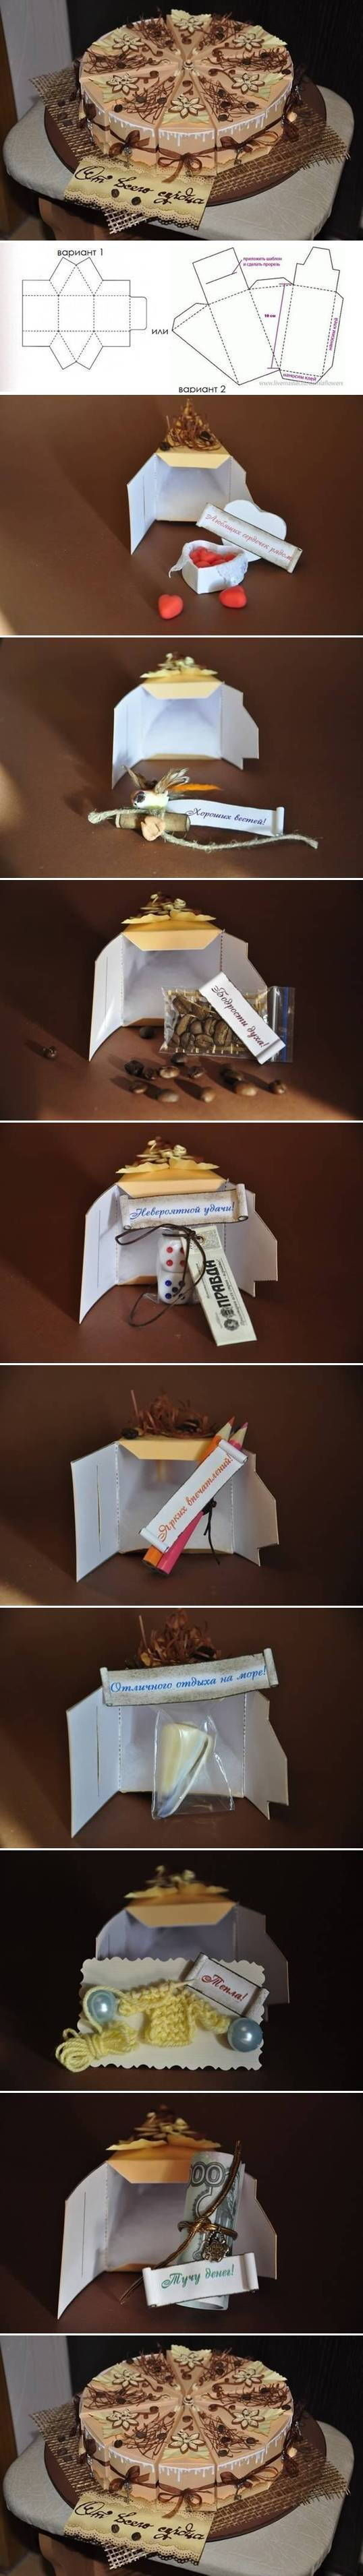 DIY Cake Gift Box Template Pictures, Photos, and Images for Facebook, Tumblr, Pinterest, and Twitter